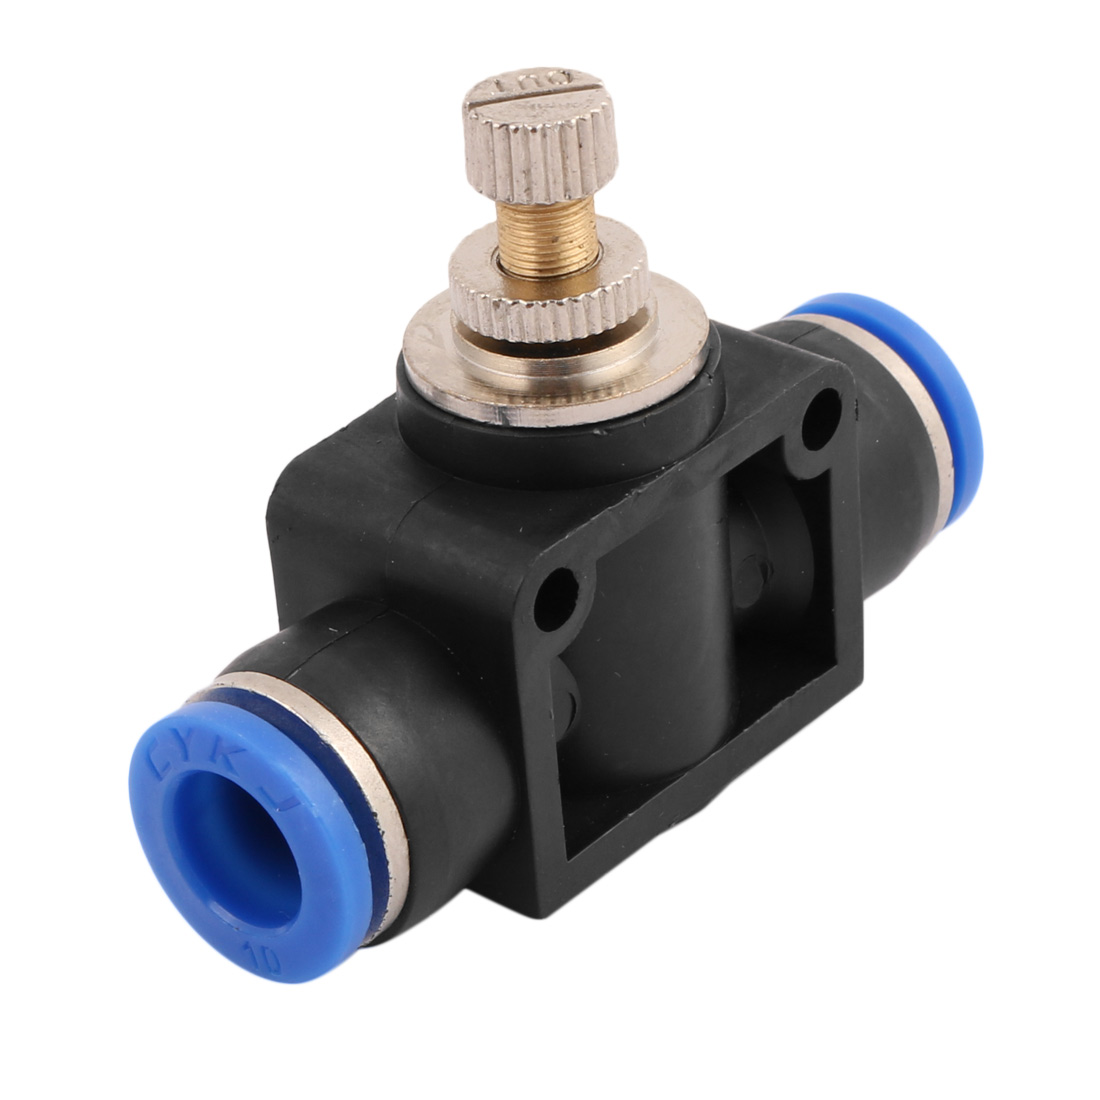 Tube Speed Control Quick Connector Pneumatic Push In Fitting 10mm to 10mm